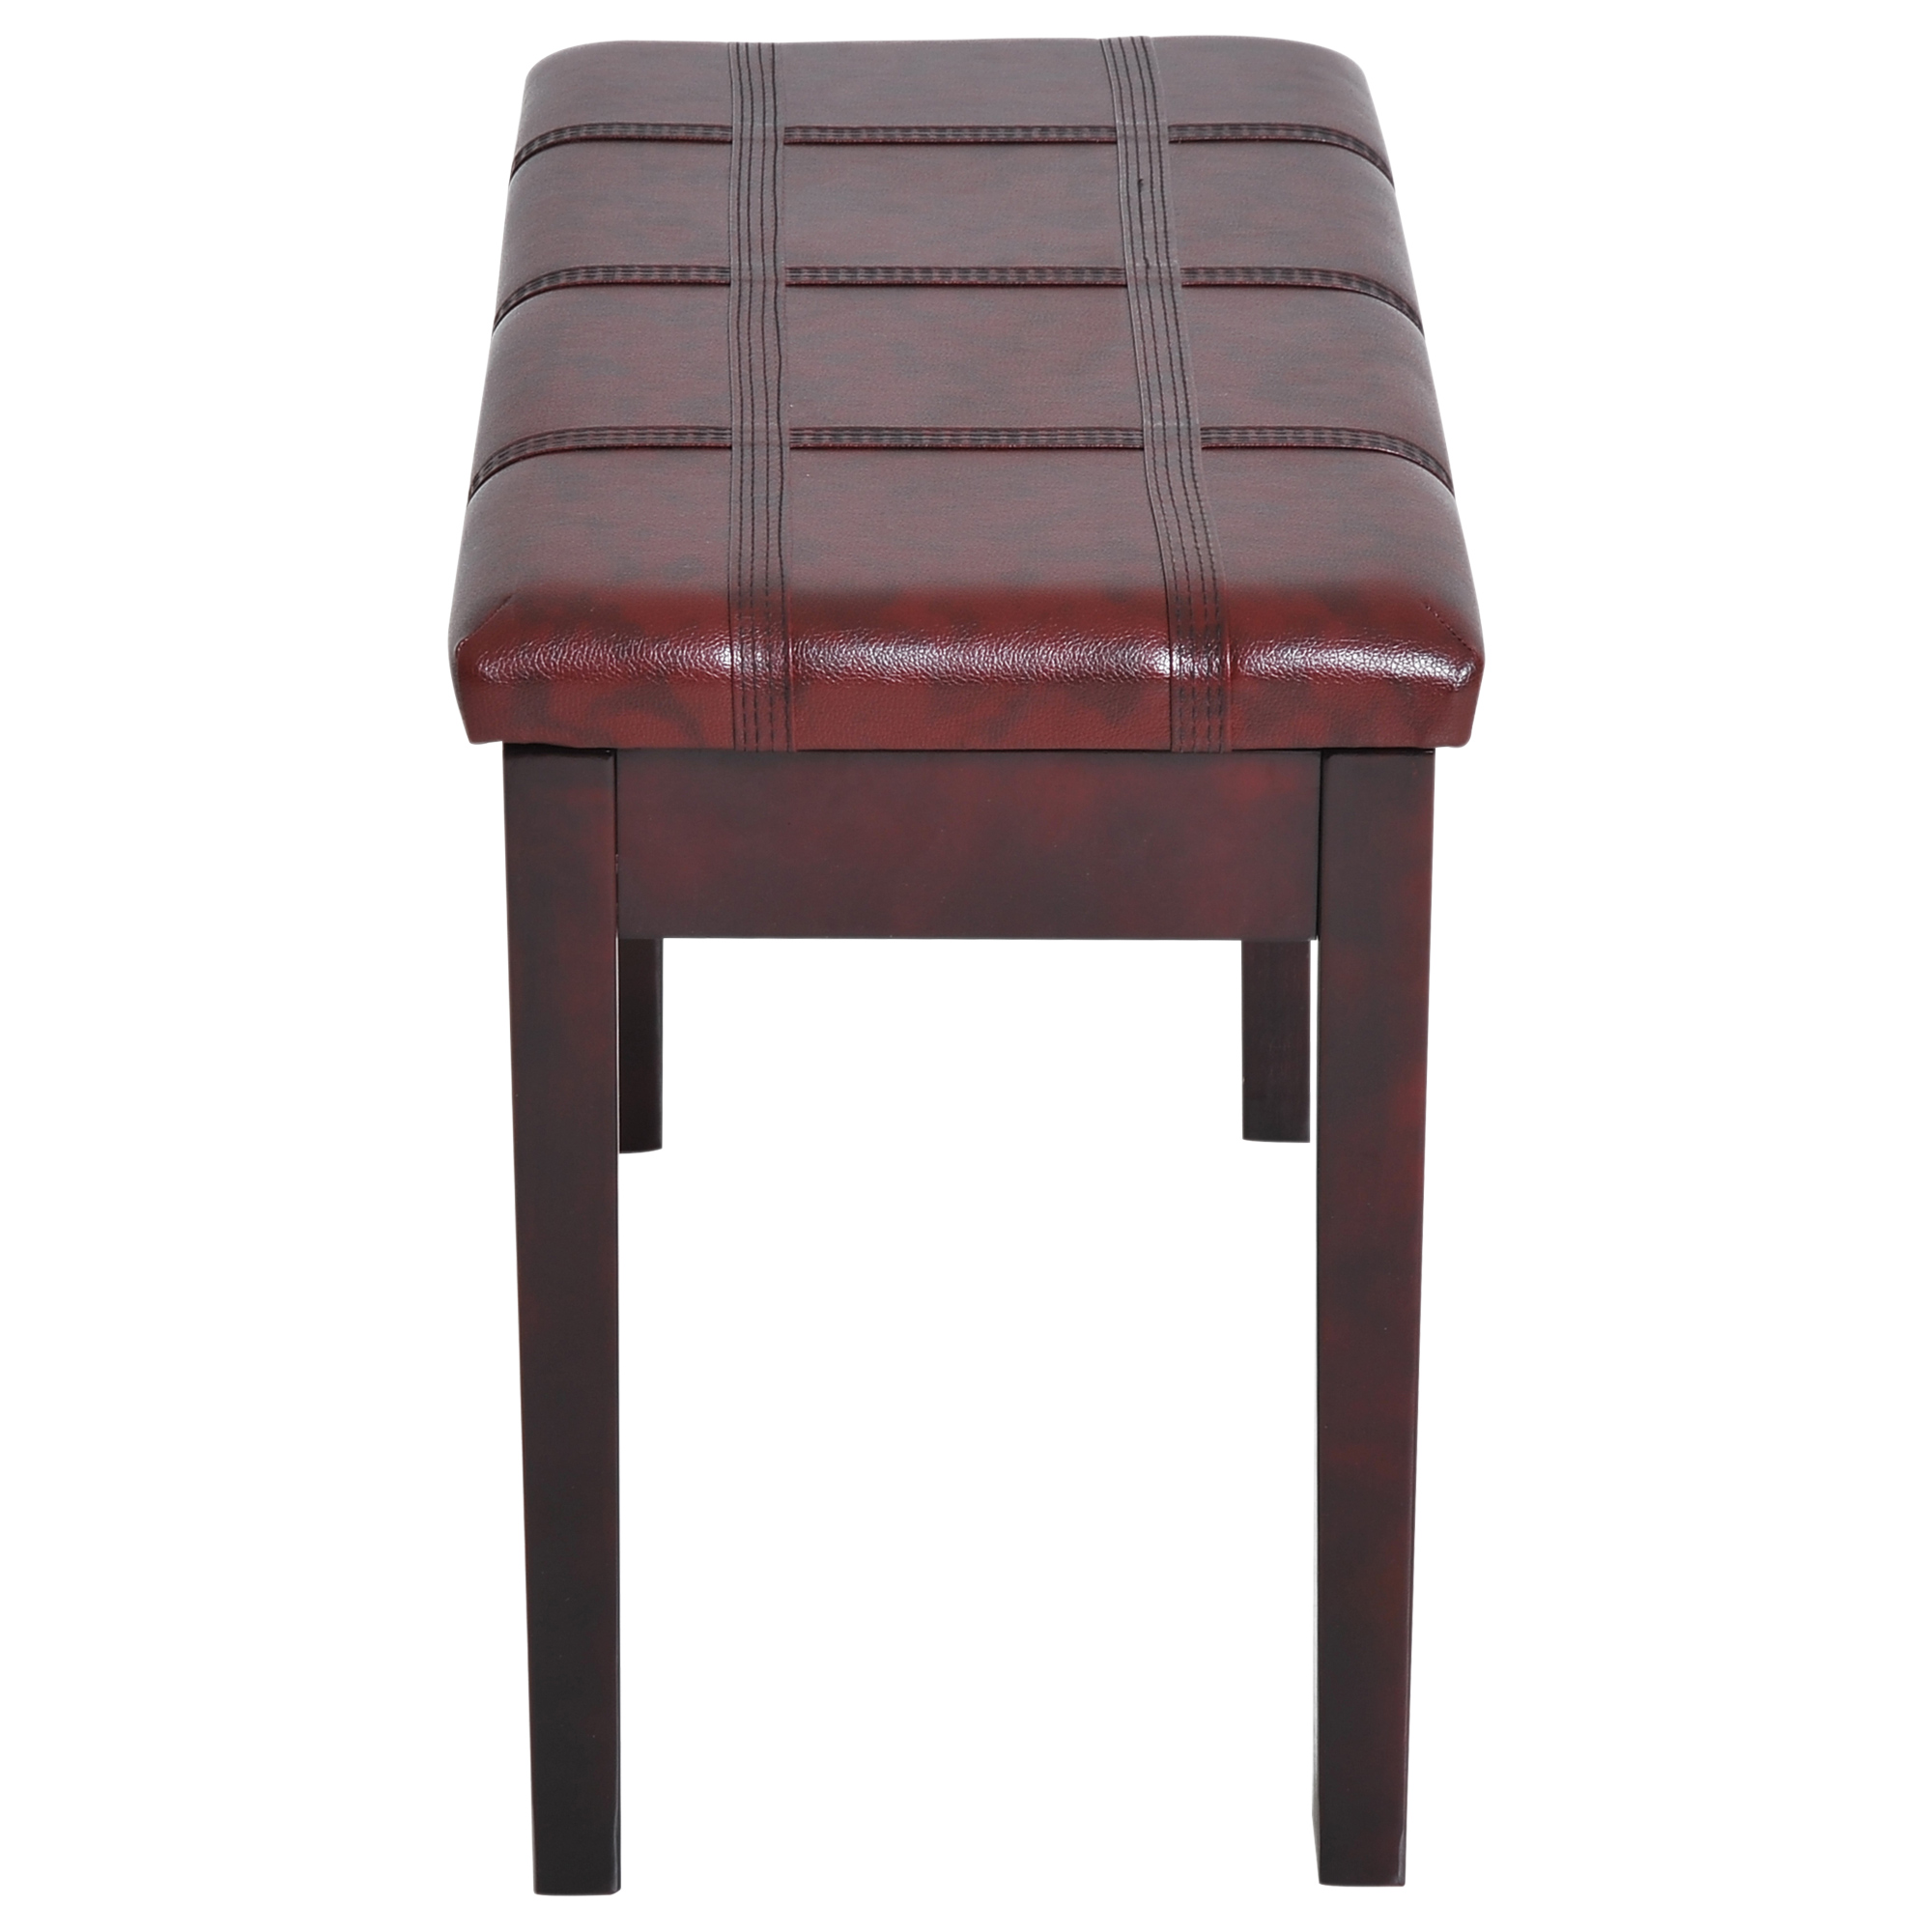 Two-Person-Lift-Top-Piano-Storage-Bench-Faux-Leather-Keyboard-Stool-Birchwood thumbnail 28